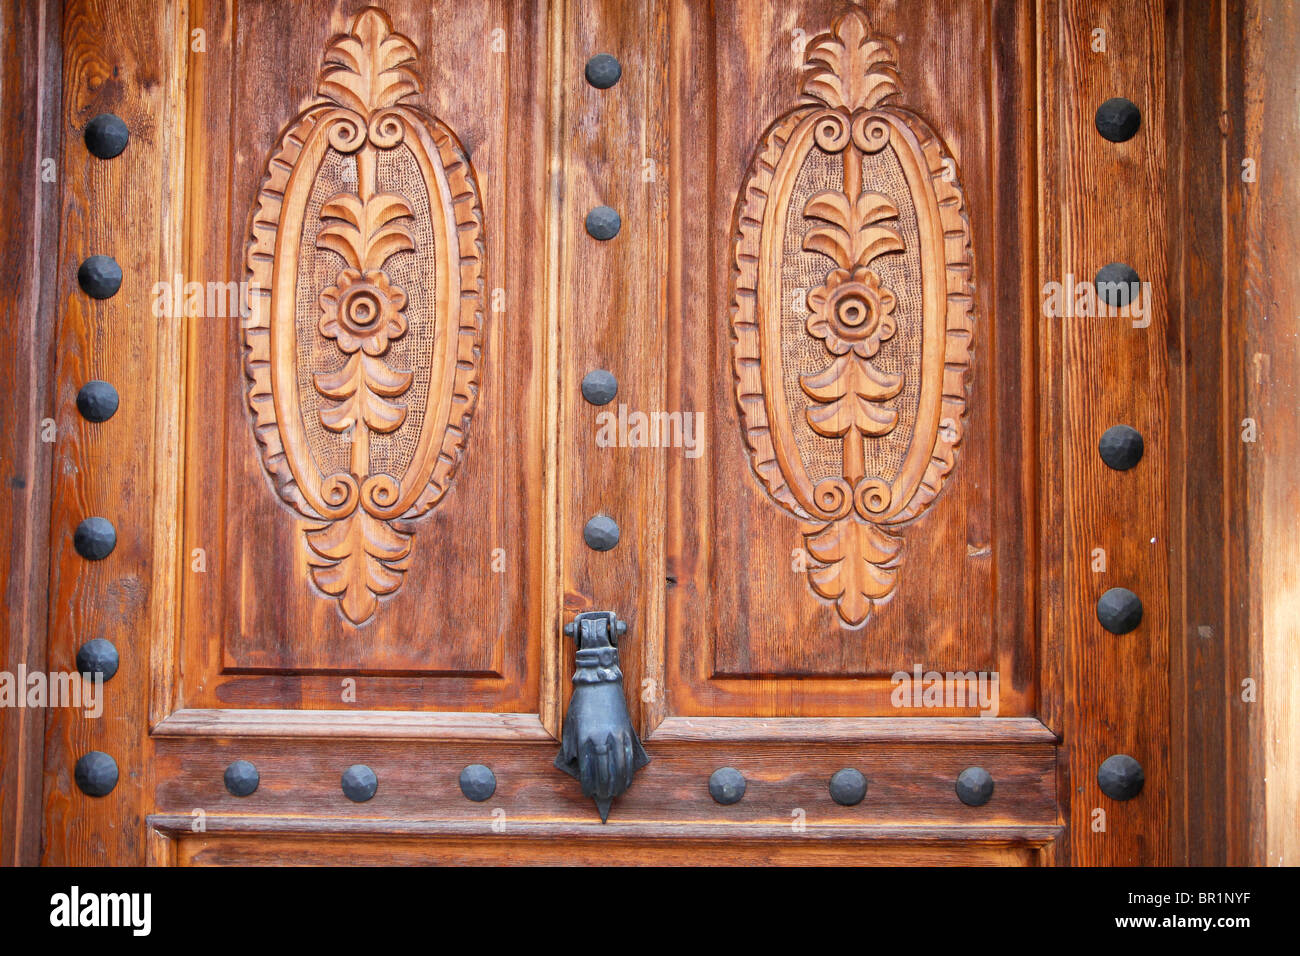 Detail of ornate wooden door to house in Kas Old Town, Turkey - Stock Image